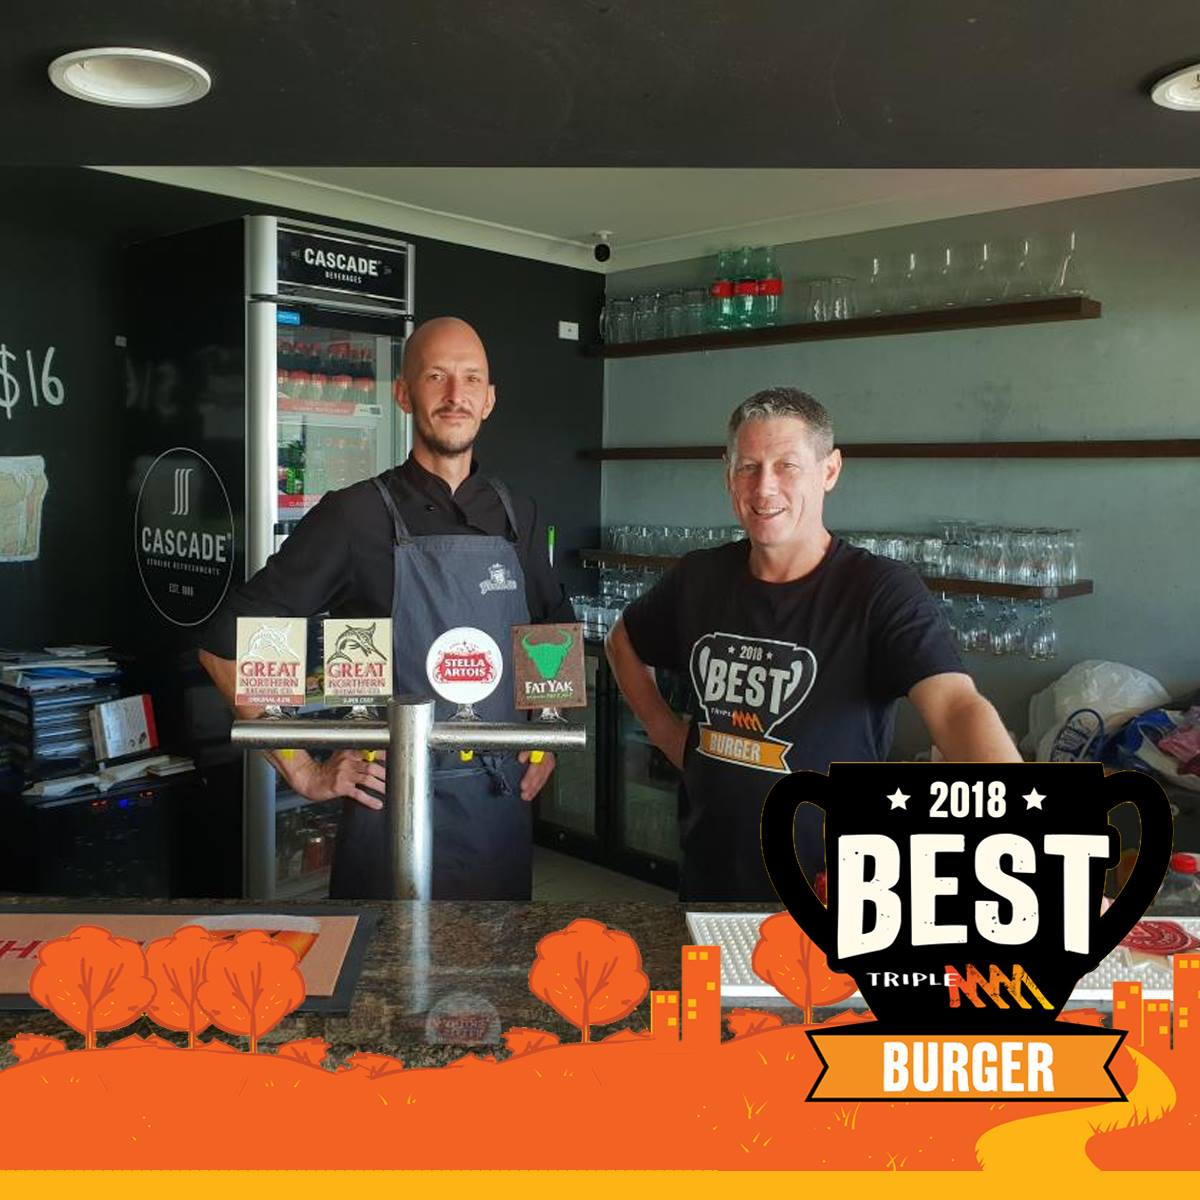 Yankee D's Wins Cairns Best Burger. - Picture Source: Triple M Radio Facebook